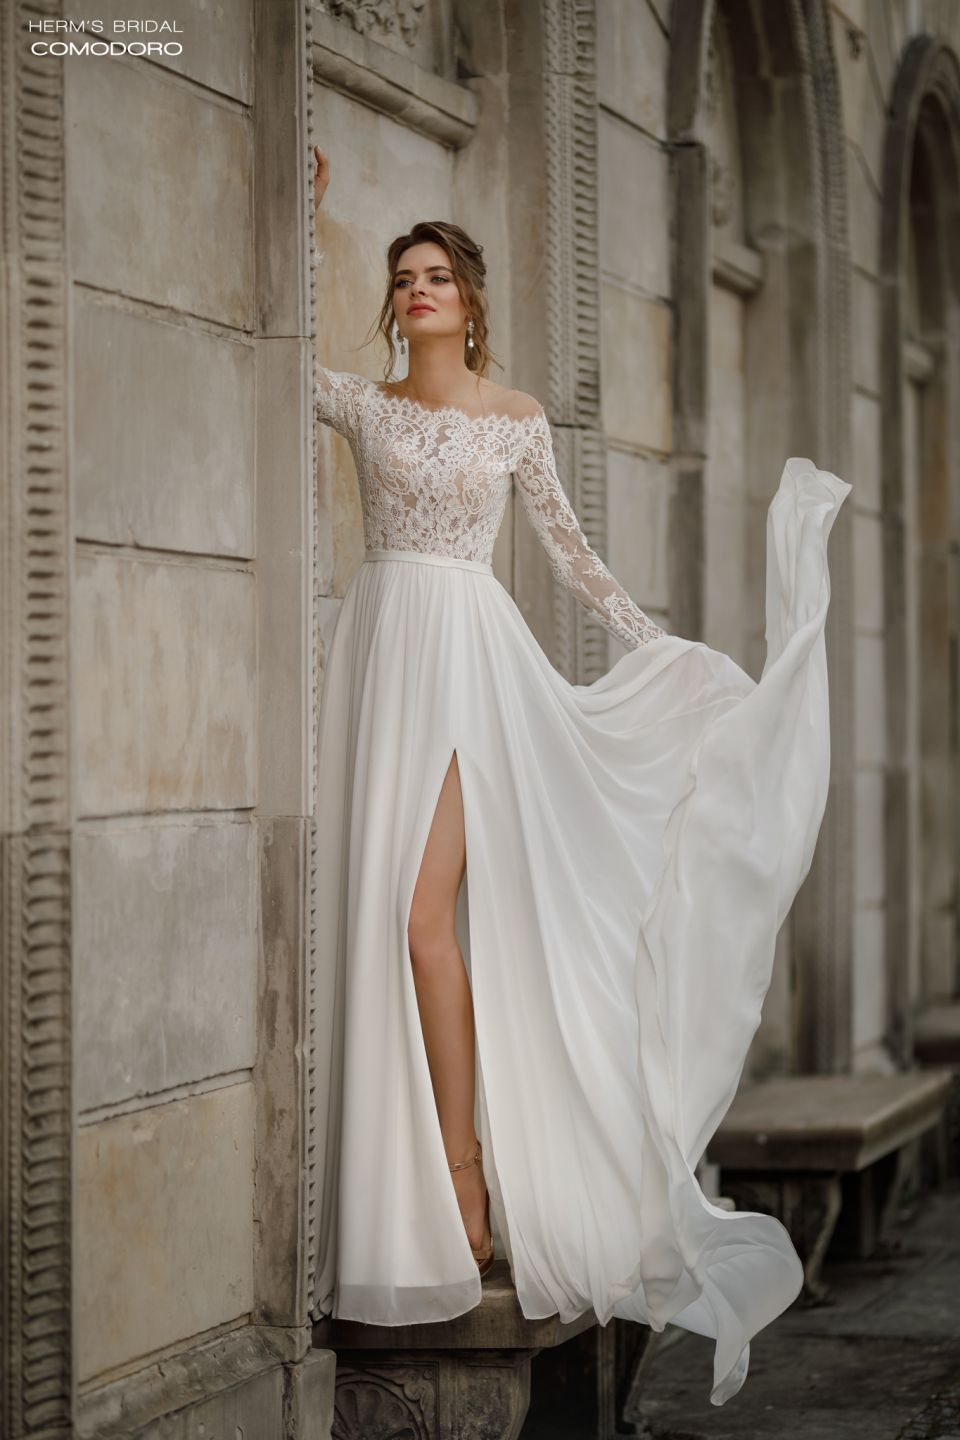 wedding dress herms bridal Comodoro